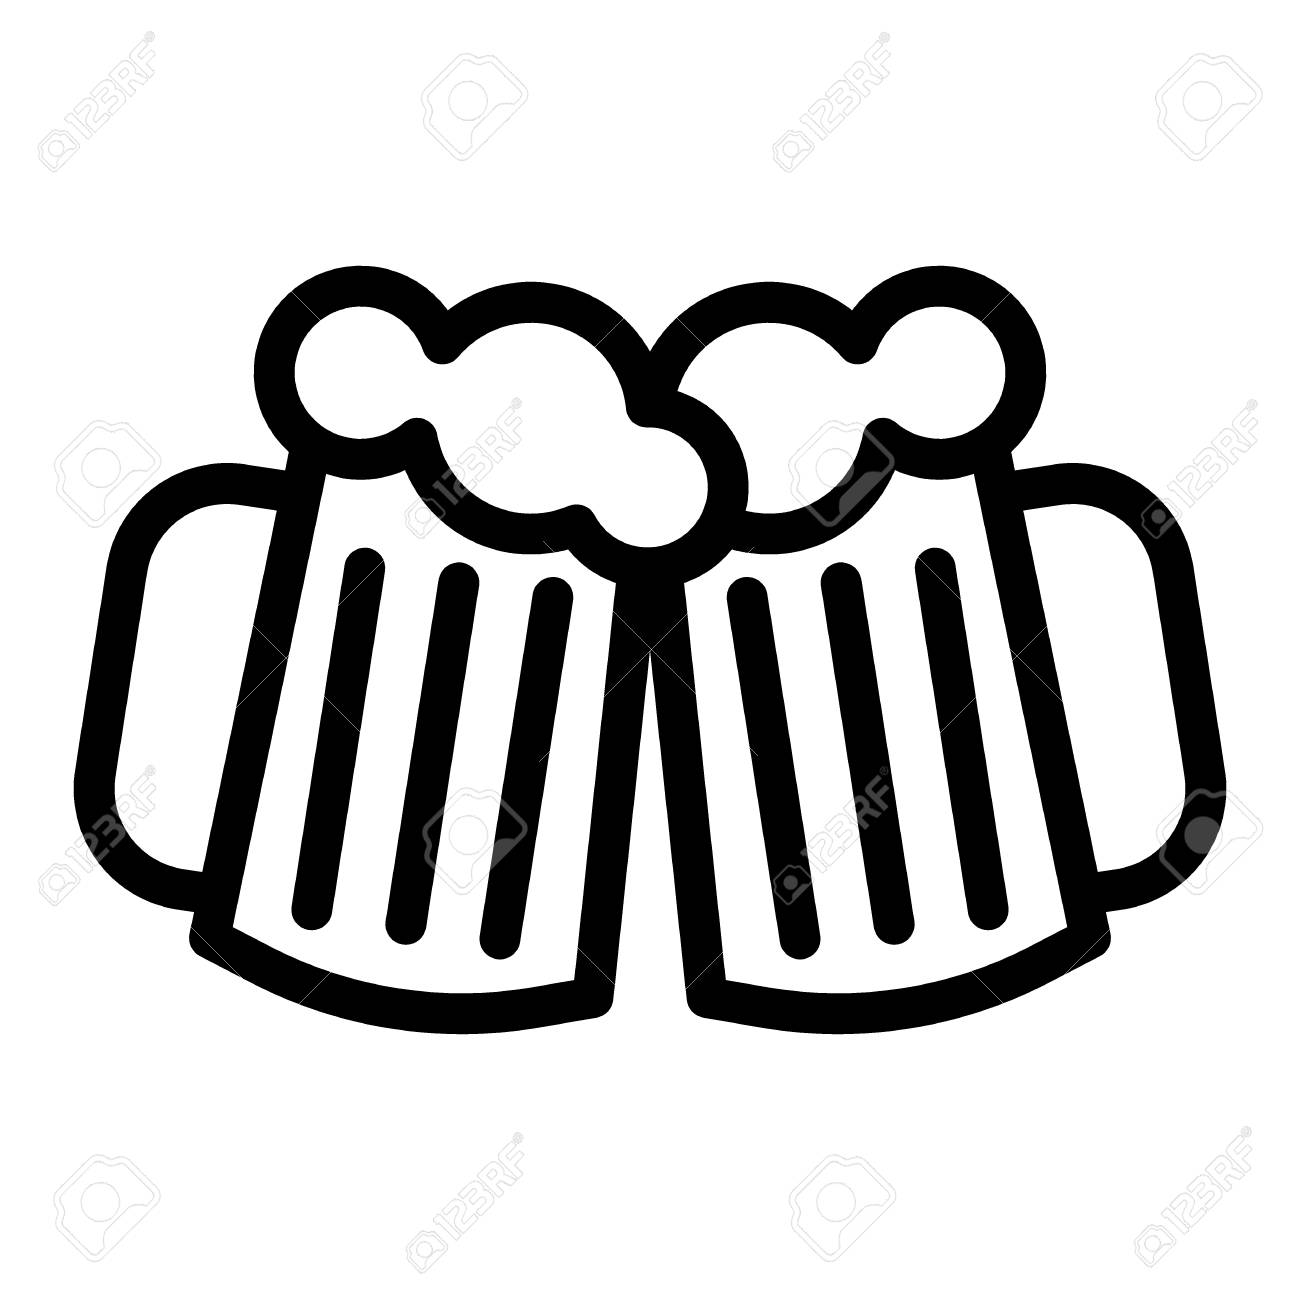 Two glasses of beer line icon. Cheers beer mugs vector illustration...